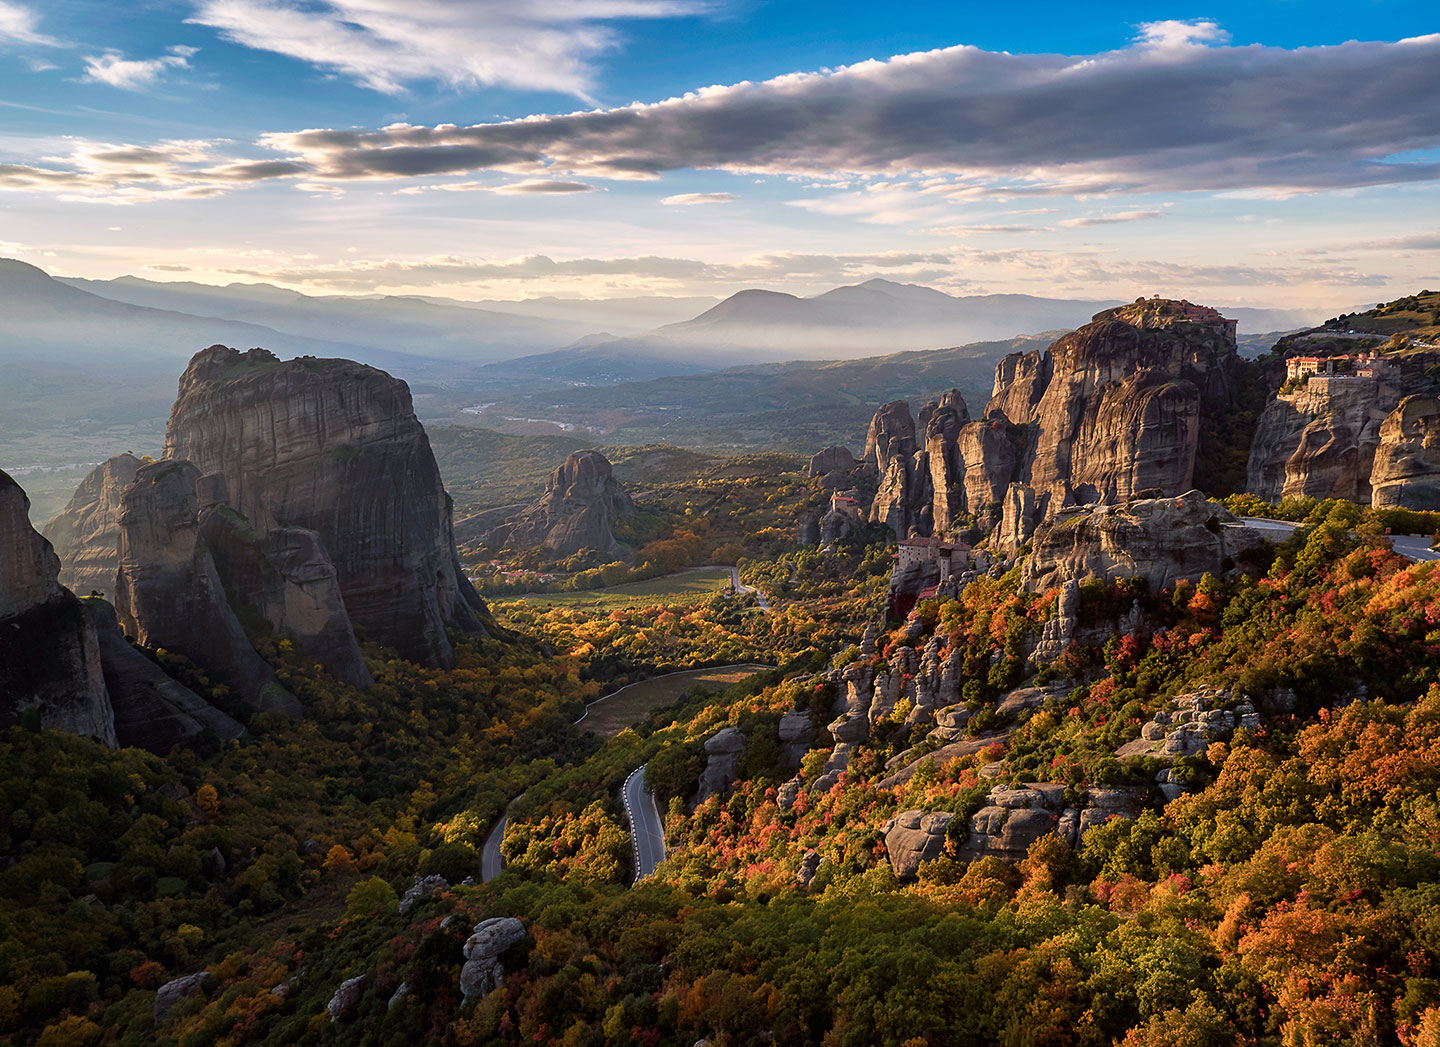 (Meteora during a sunset is truly a valley of dreams.)